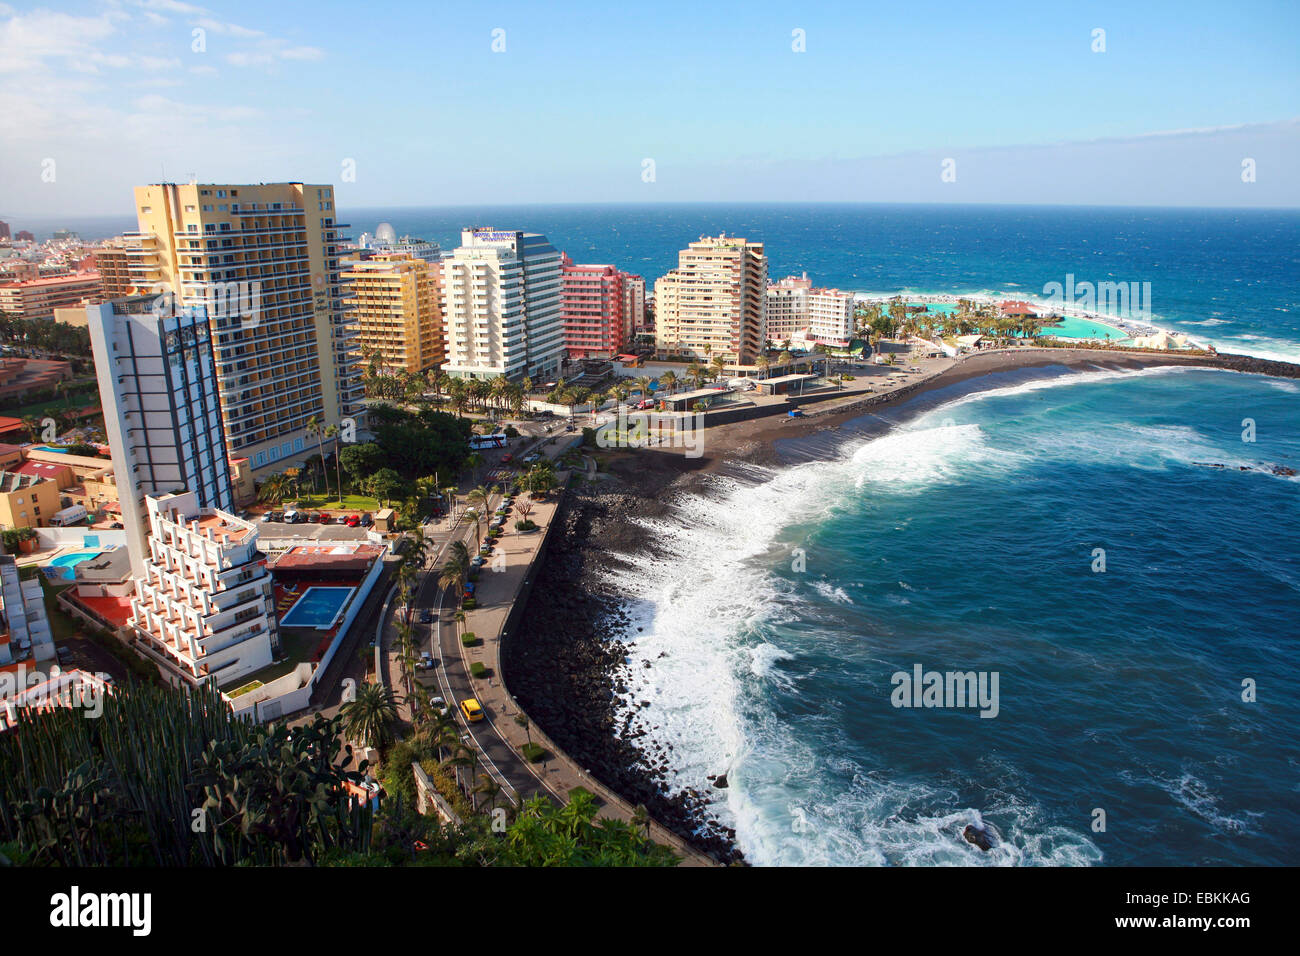 View from la paz to puerto de la cruz and playa martianez lago stock photo royalty free image - Playa puerto de la cruz tenerife ...